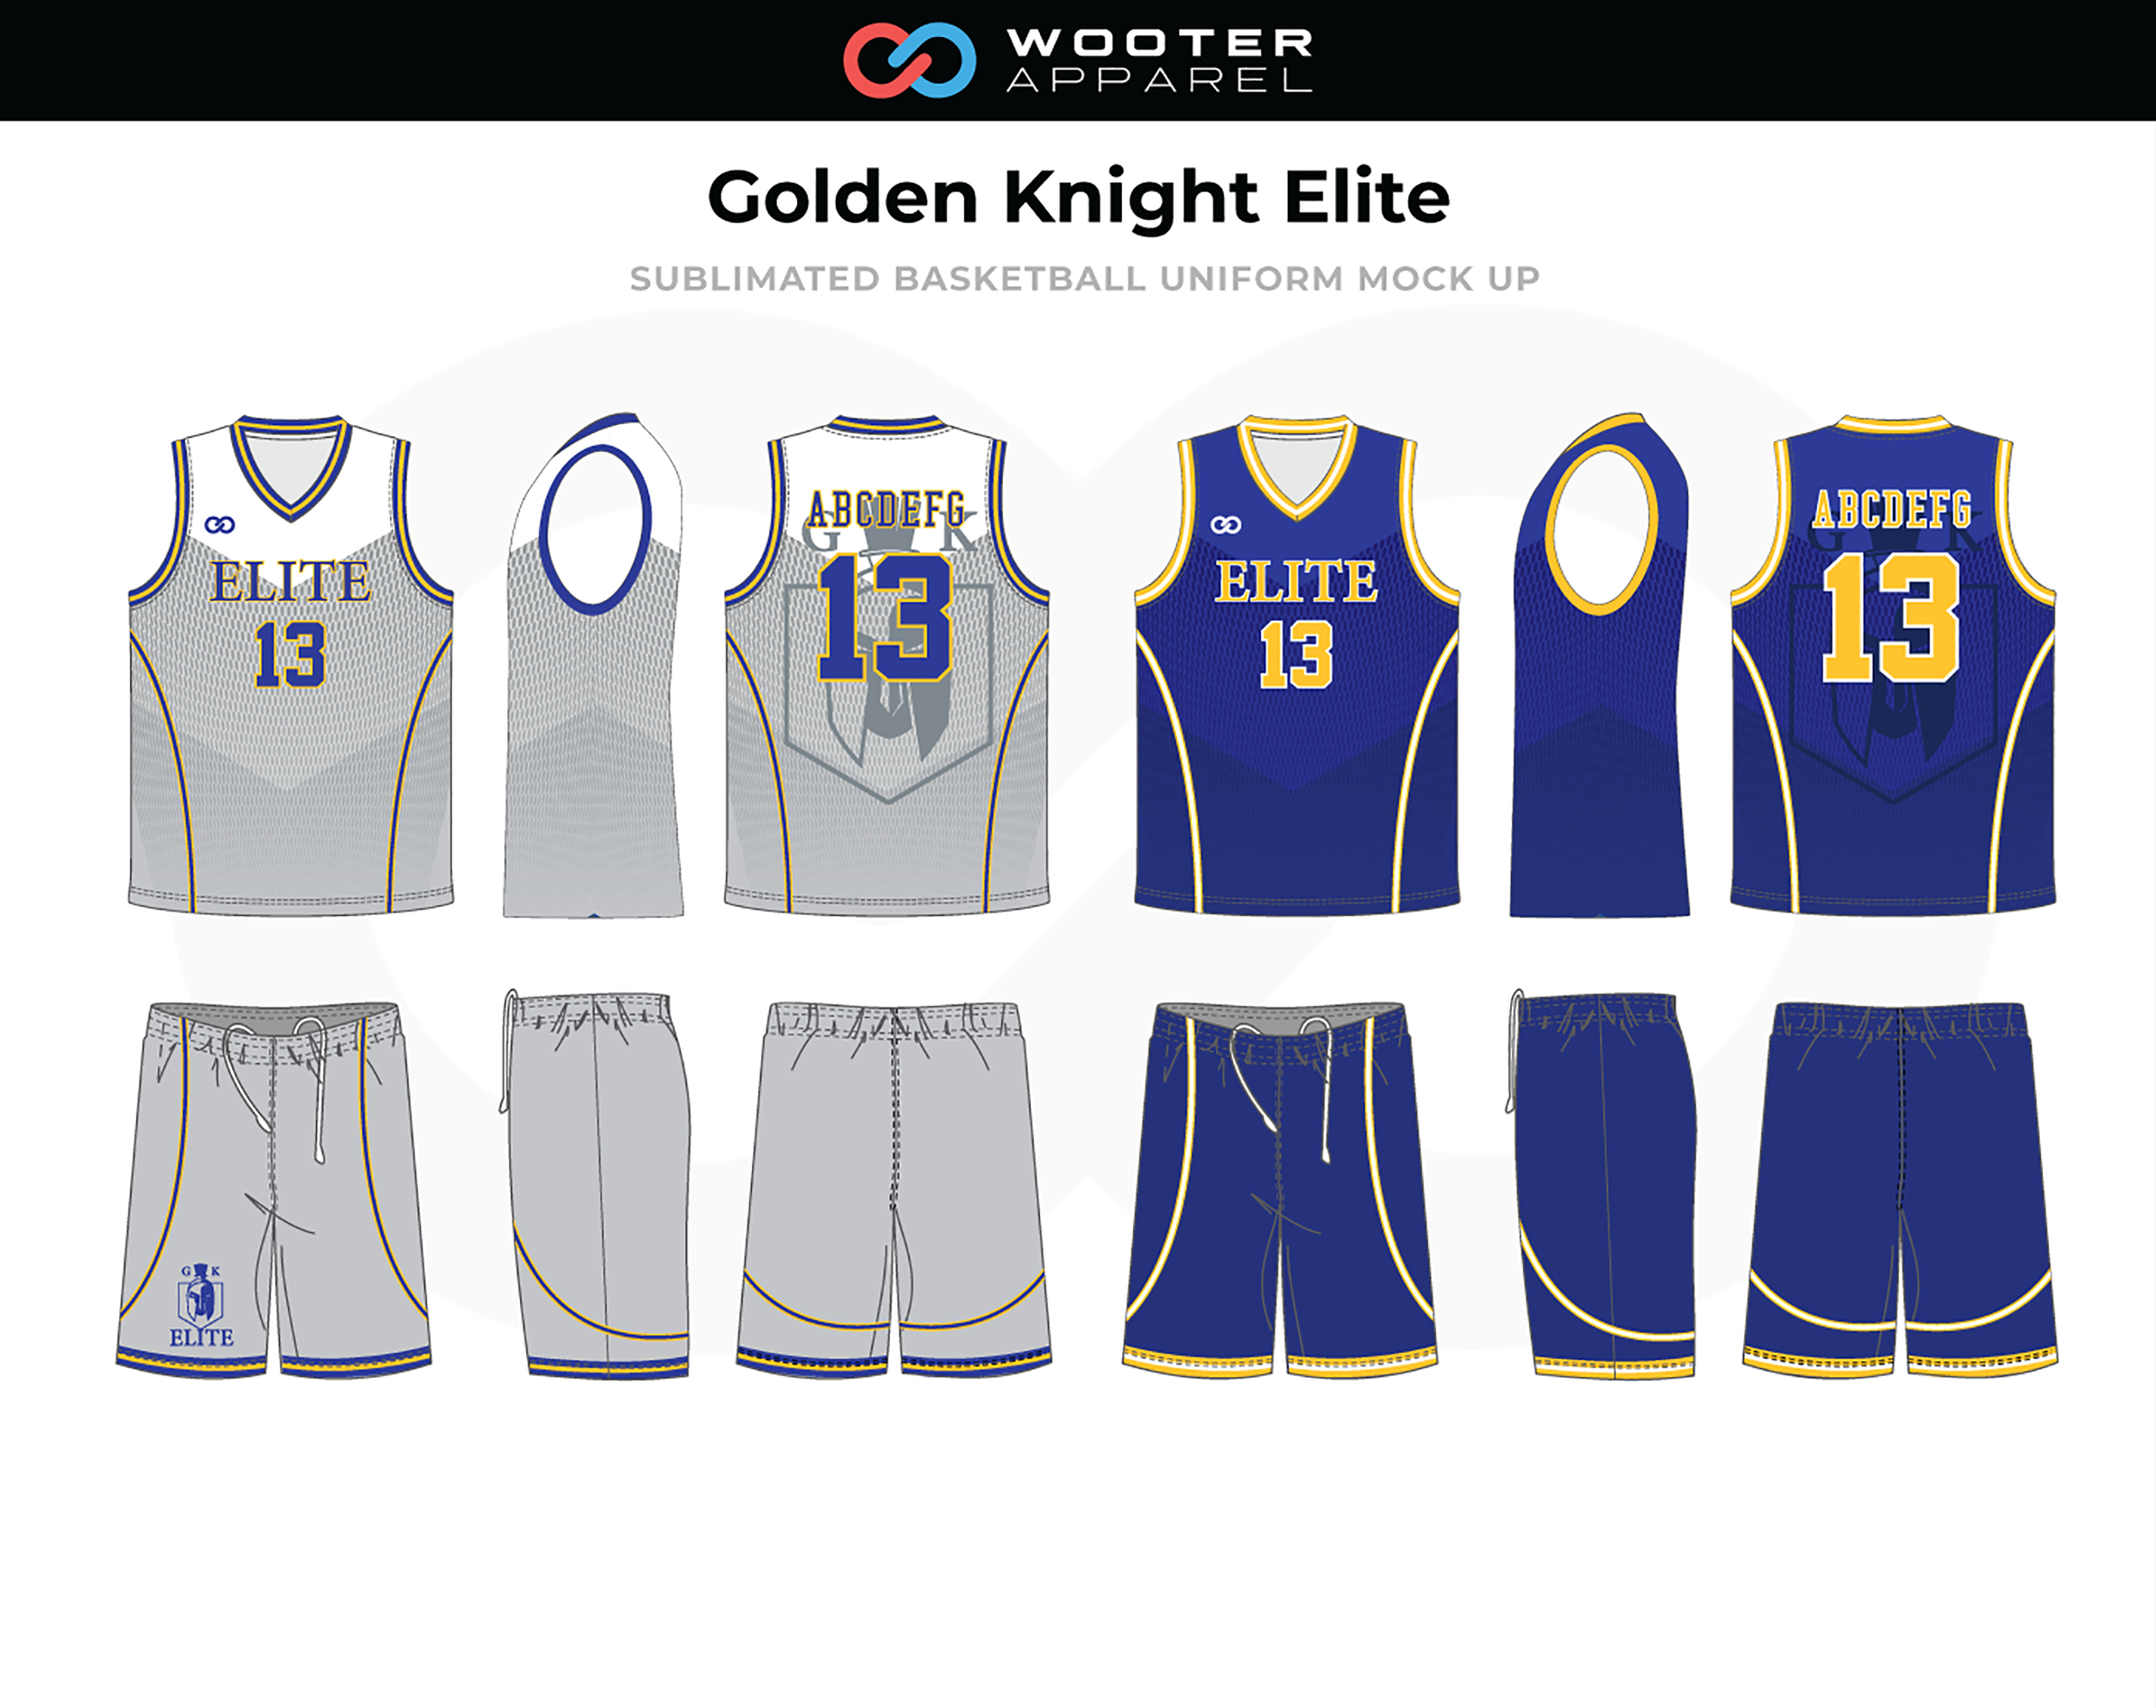 GOLDEN KNIGHT ELITE Blue White Grey Yellow Basketball Uniform, Jersey and Shorts